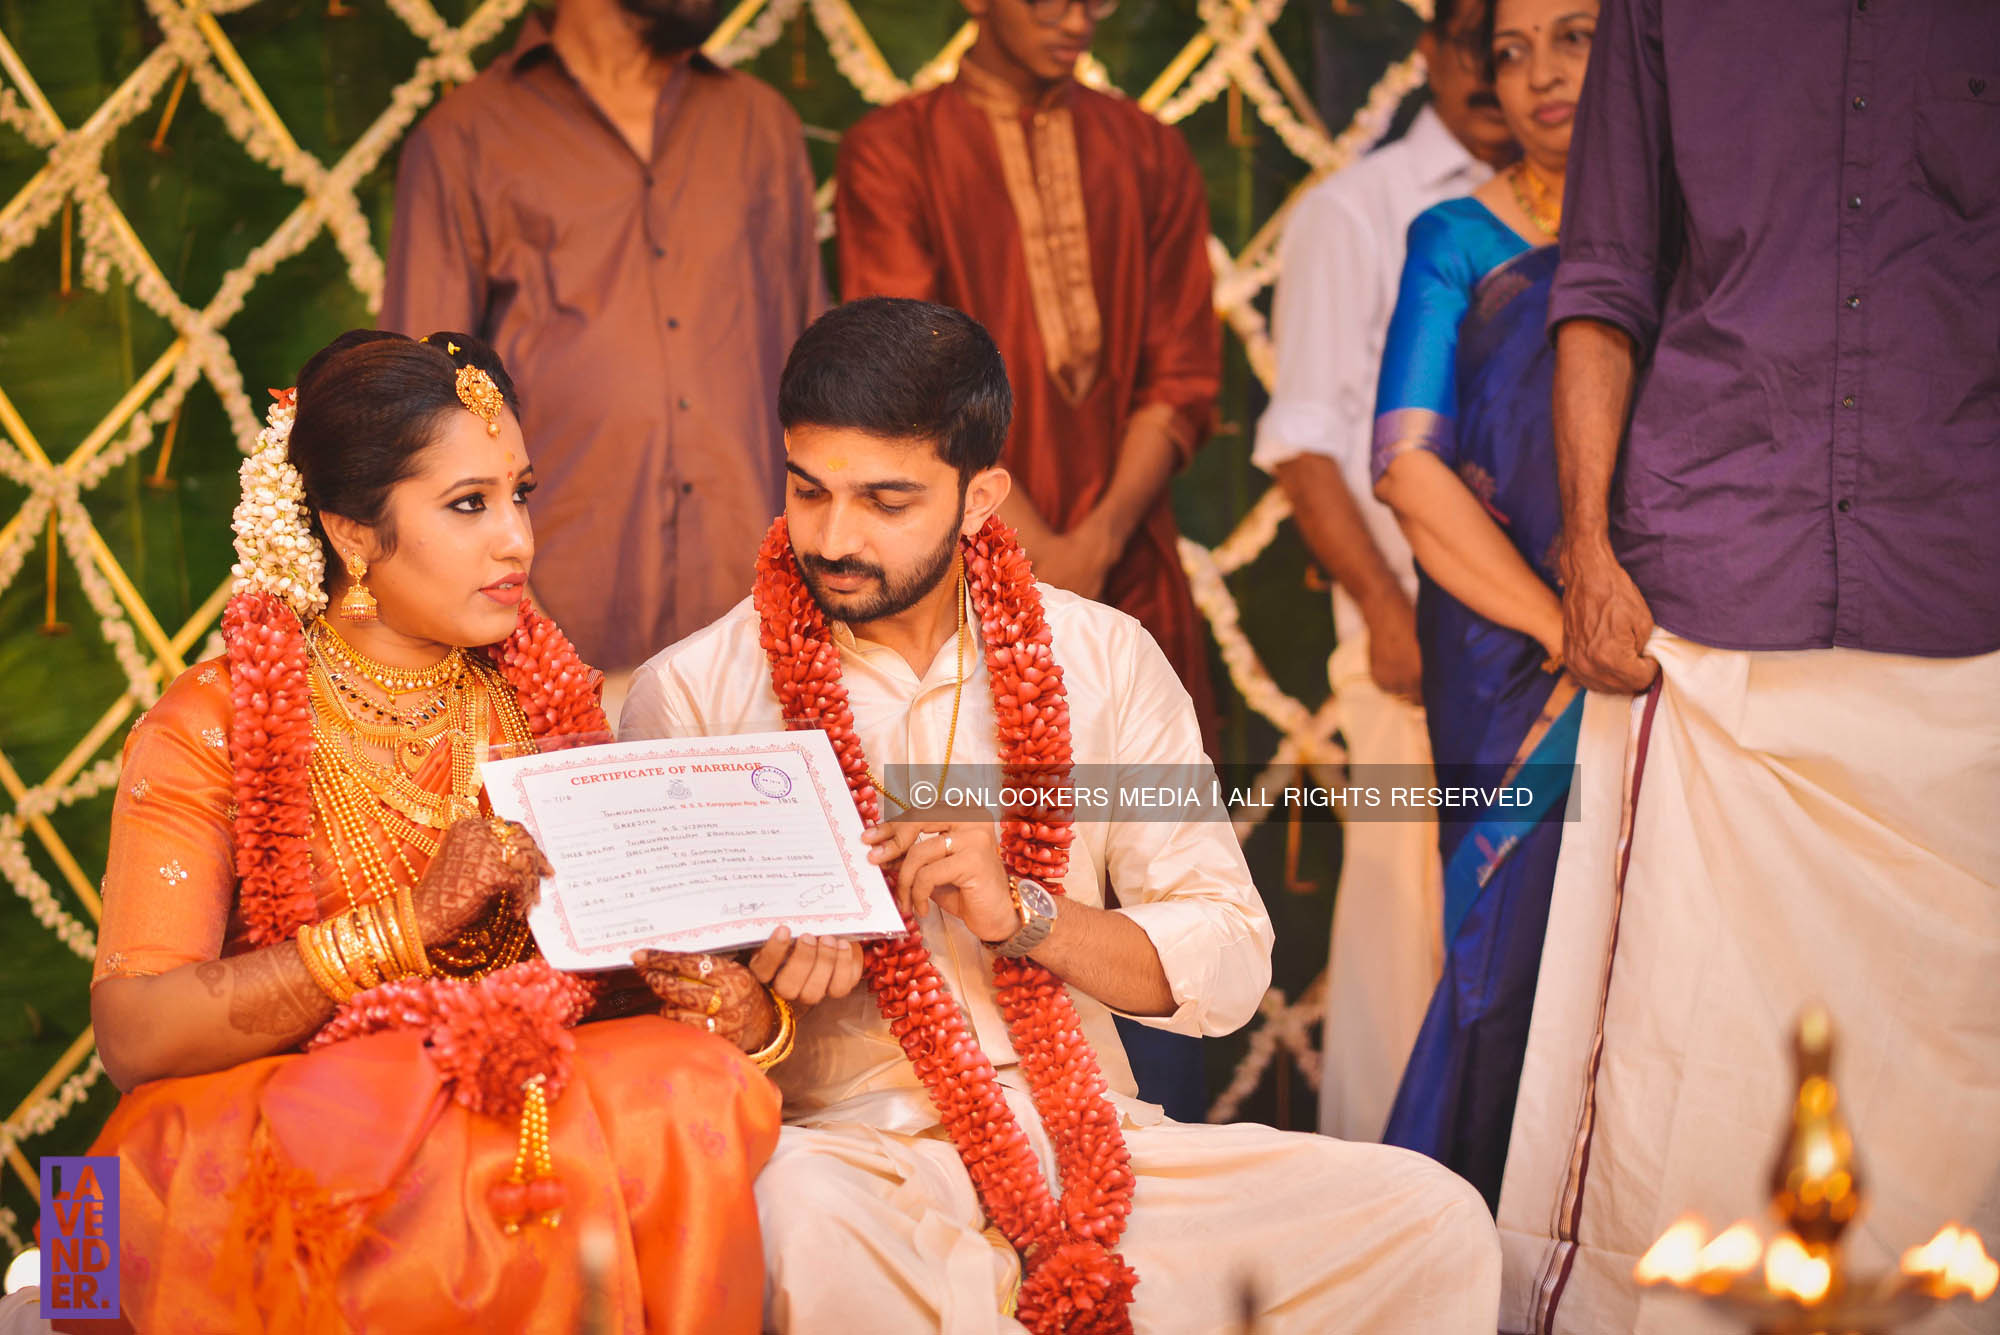 http://onlookersmedia.in/wp-content/uploads/2018/05/sreejith-vijay-wedding-stills-images-66.jpg